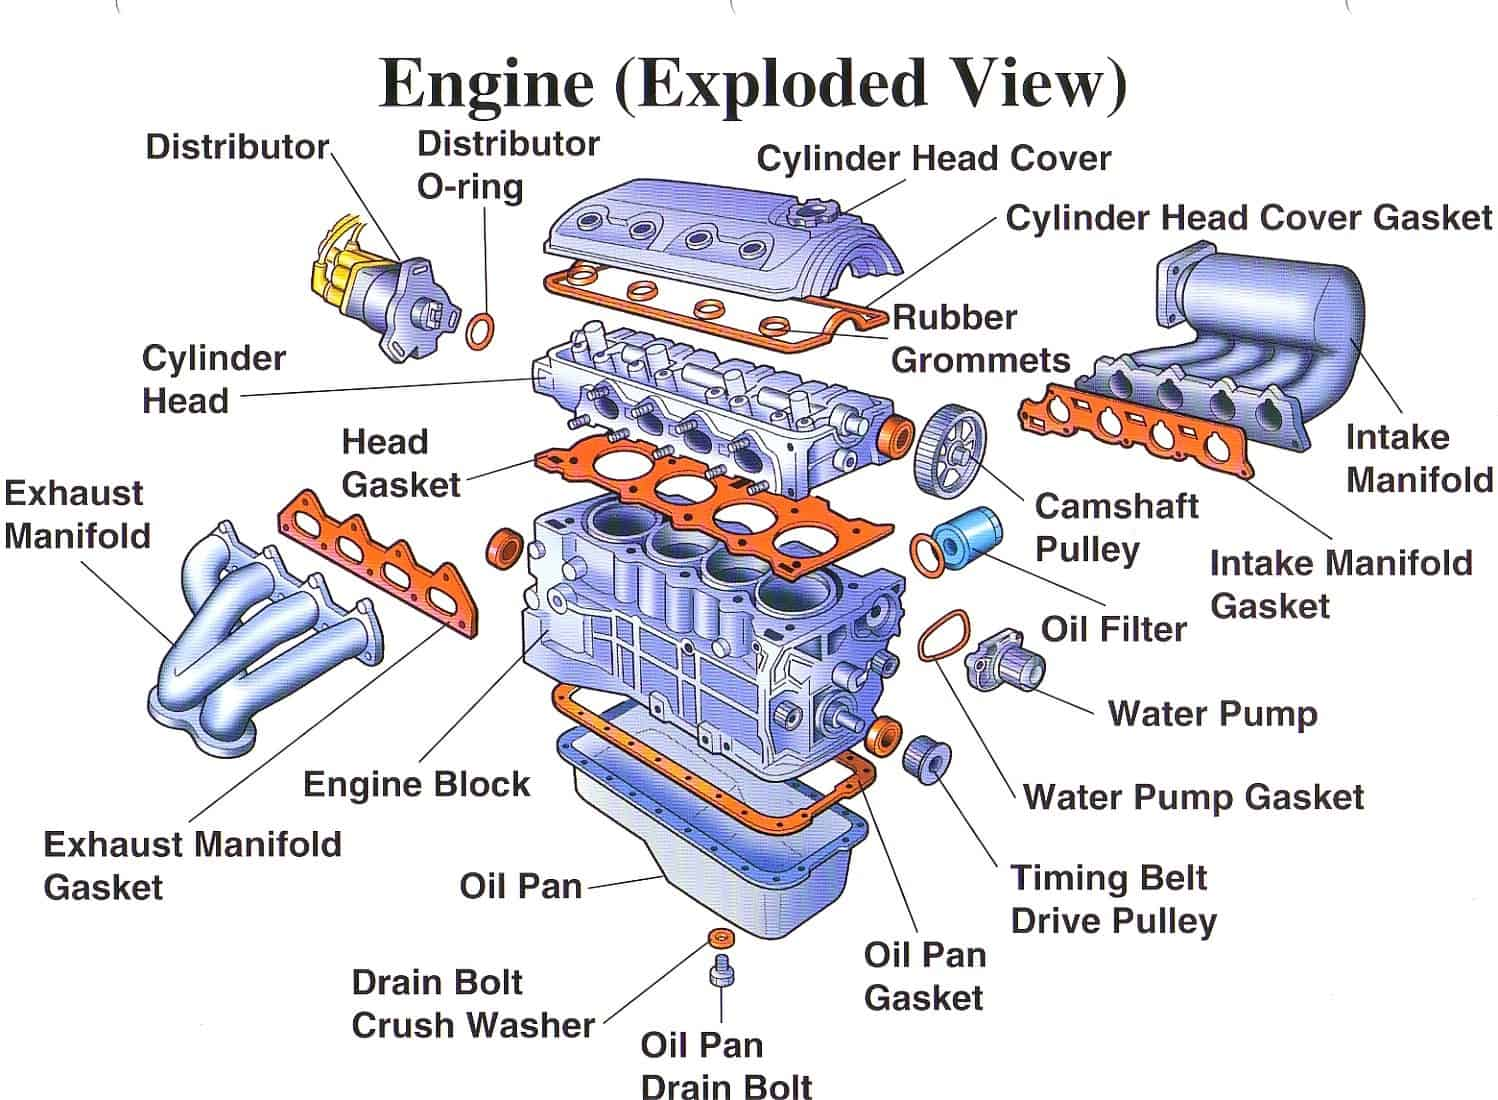 hight resolution of engine block diagram wiring diagram database diagram of engine compartment diagram of engine